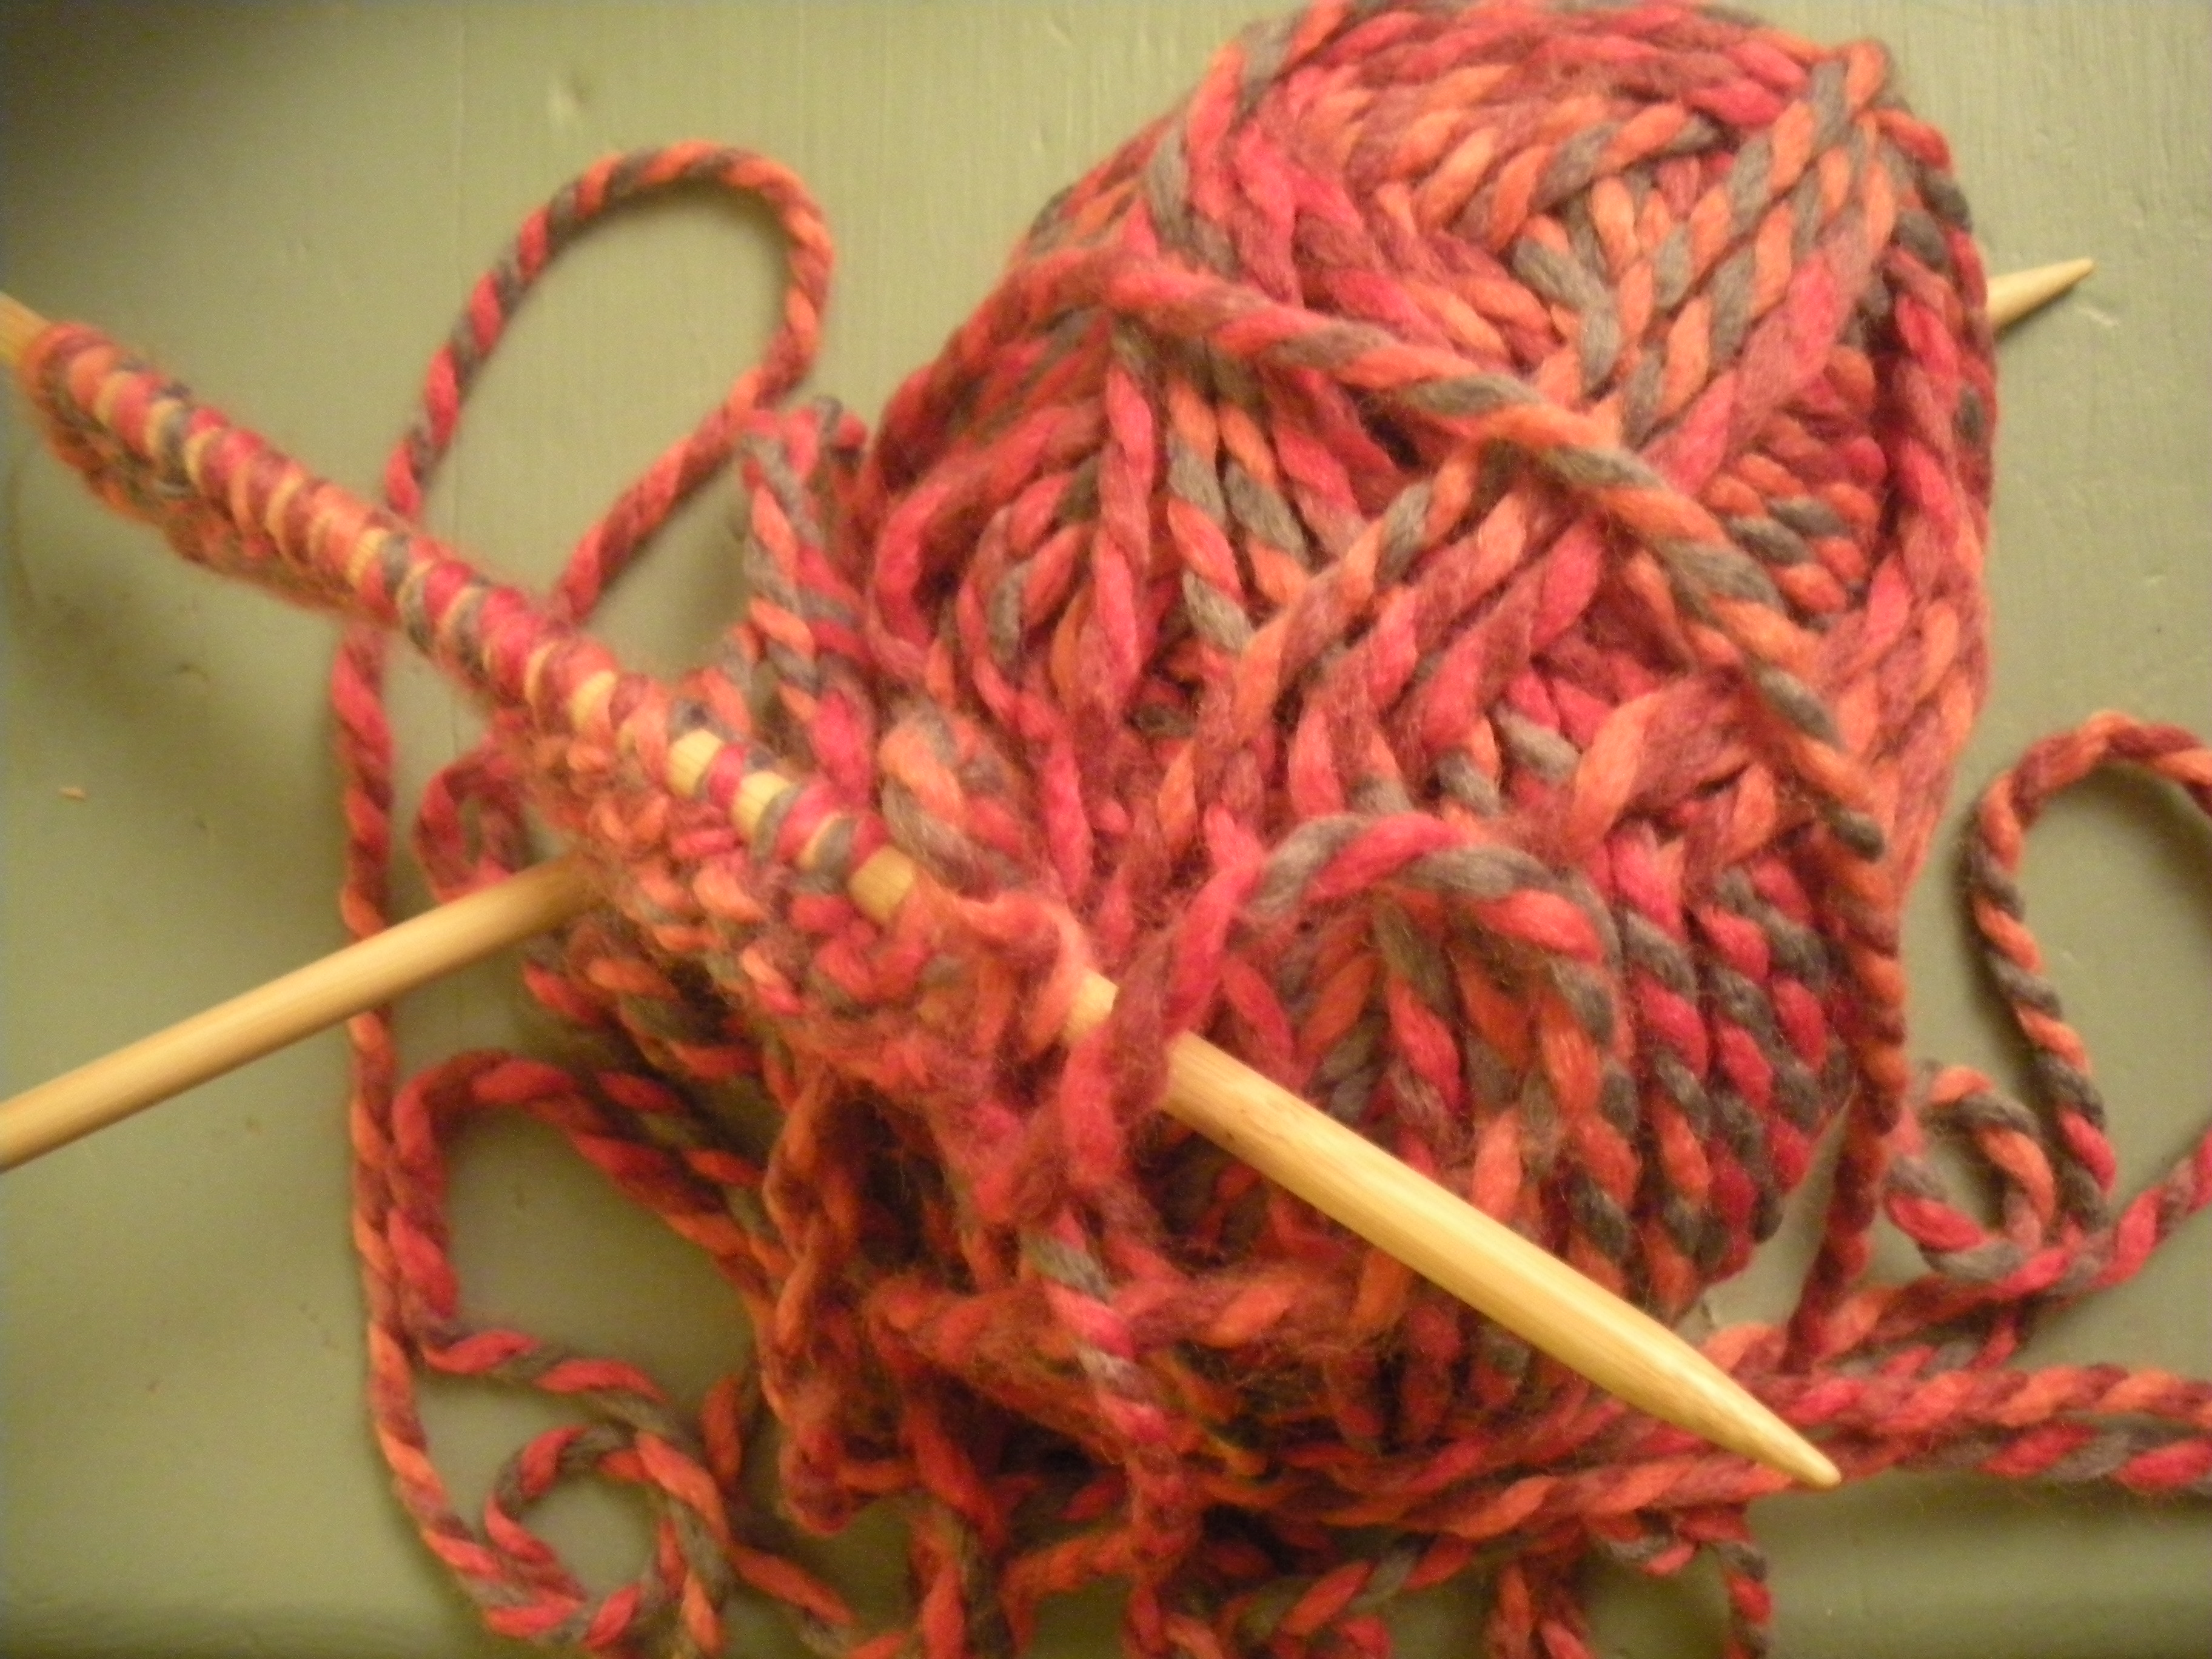 Knitting Knotty : Knitting day…time to get knotty homespun haley